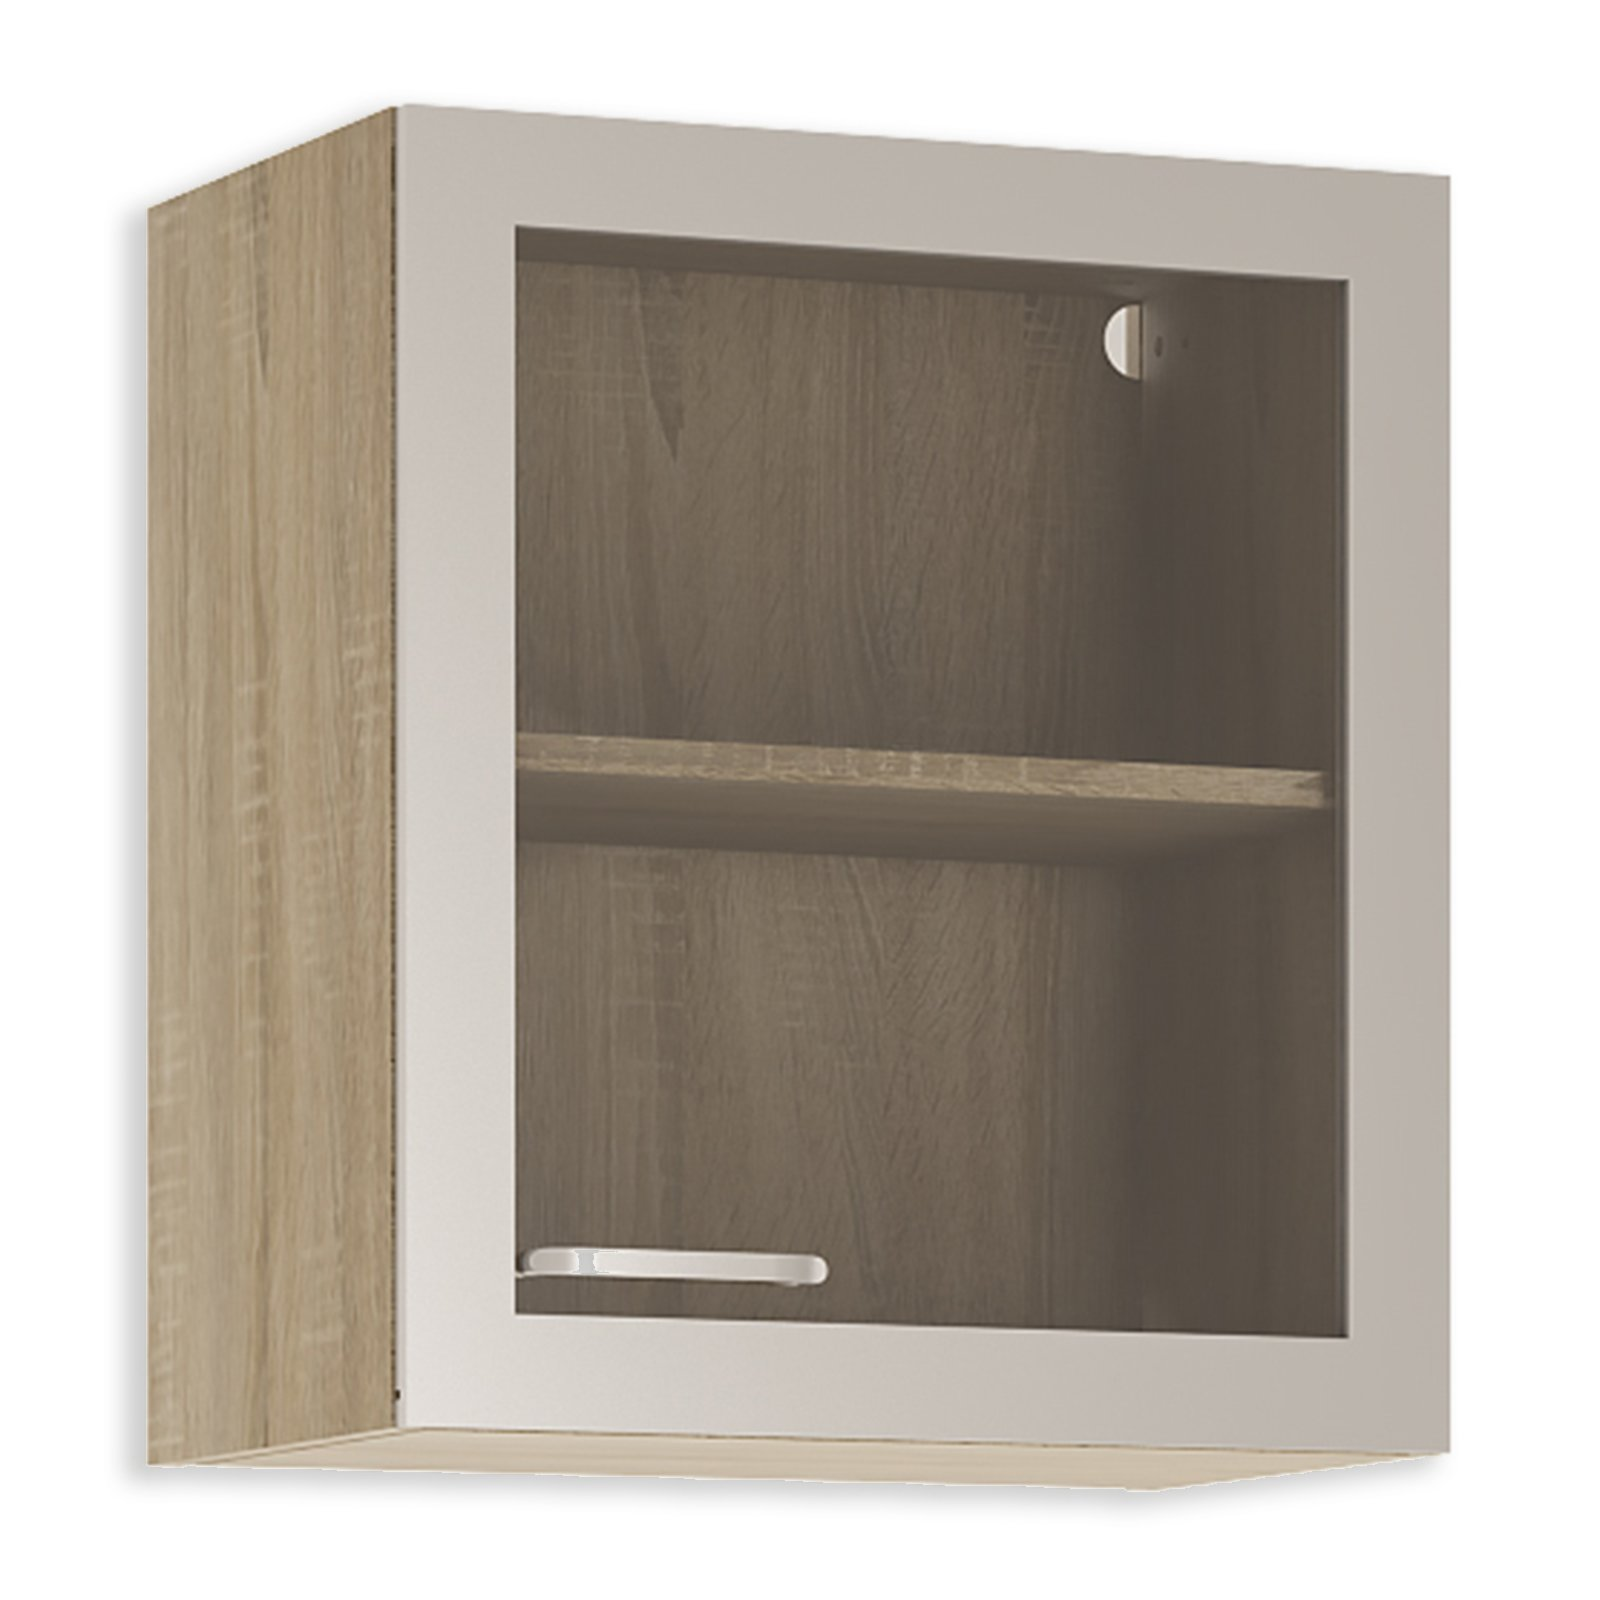 glash ngeschrank fox alu sonoma eiche 50 cm breit h ngeschr nke einzelschr nke. Black Bedroom Furniture Sets. Home Design Ideas